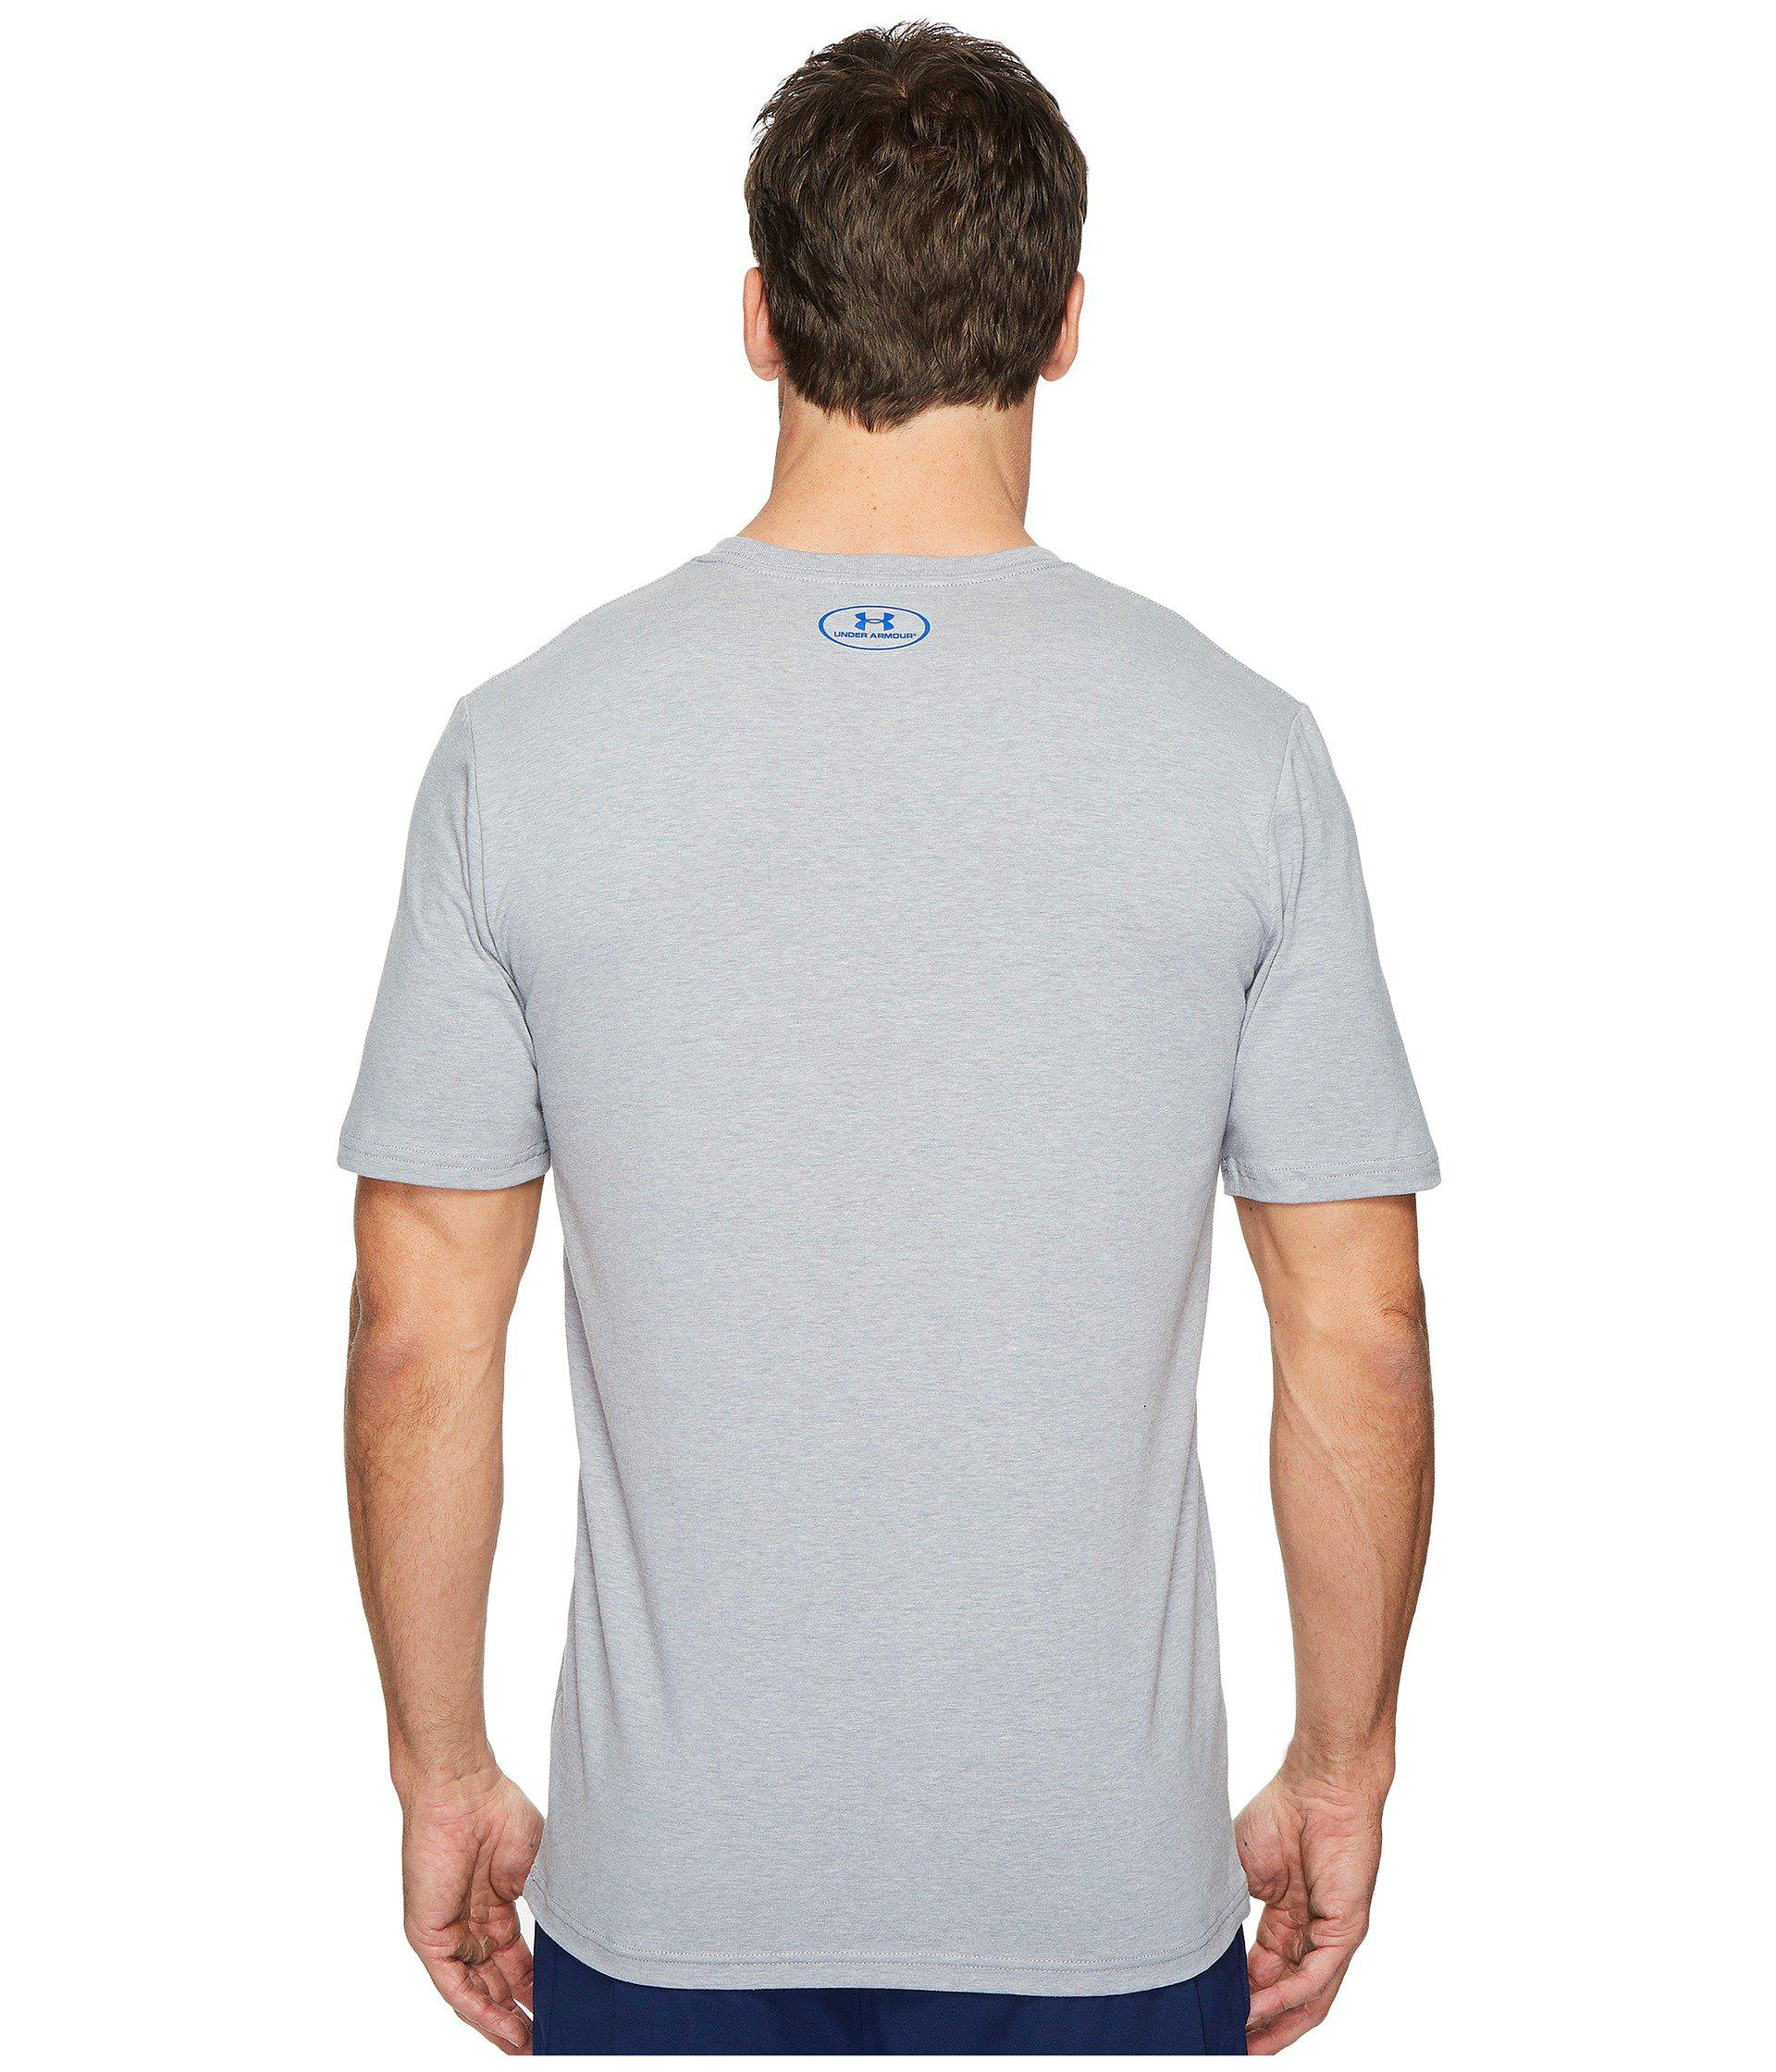 9e9d01c3 Lyst - Under Armour Basketball Icon Short Sleeve Tee in Gray for Men